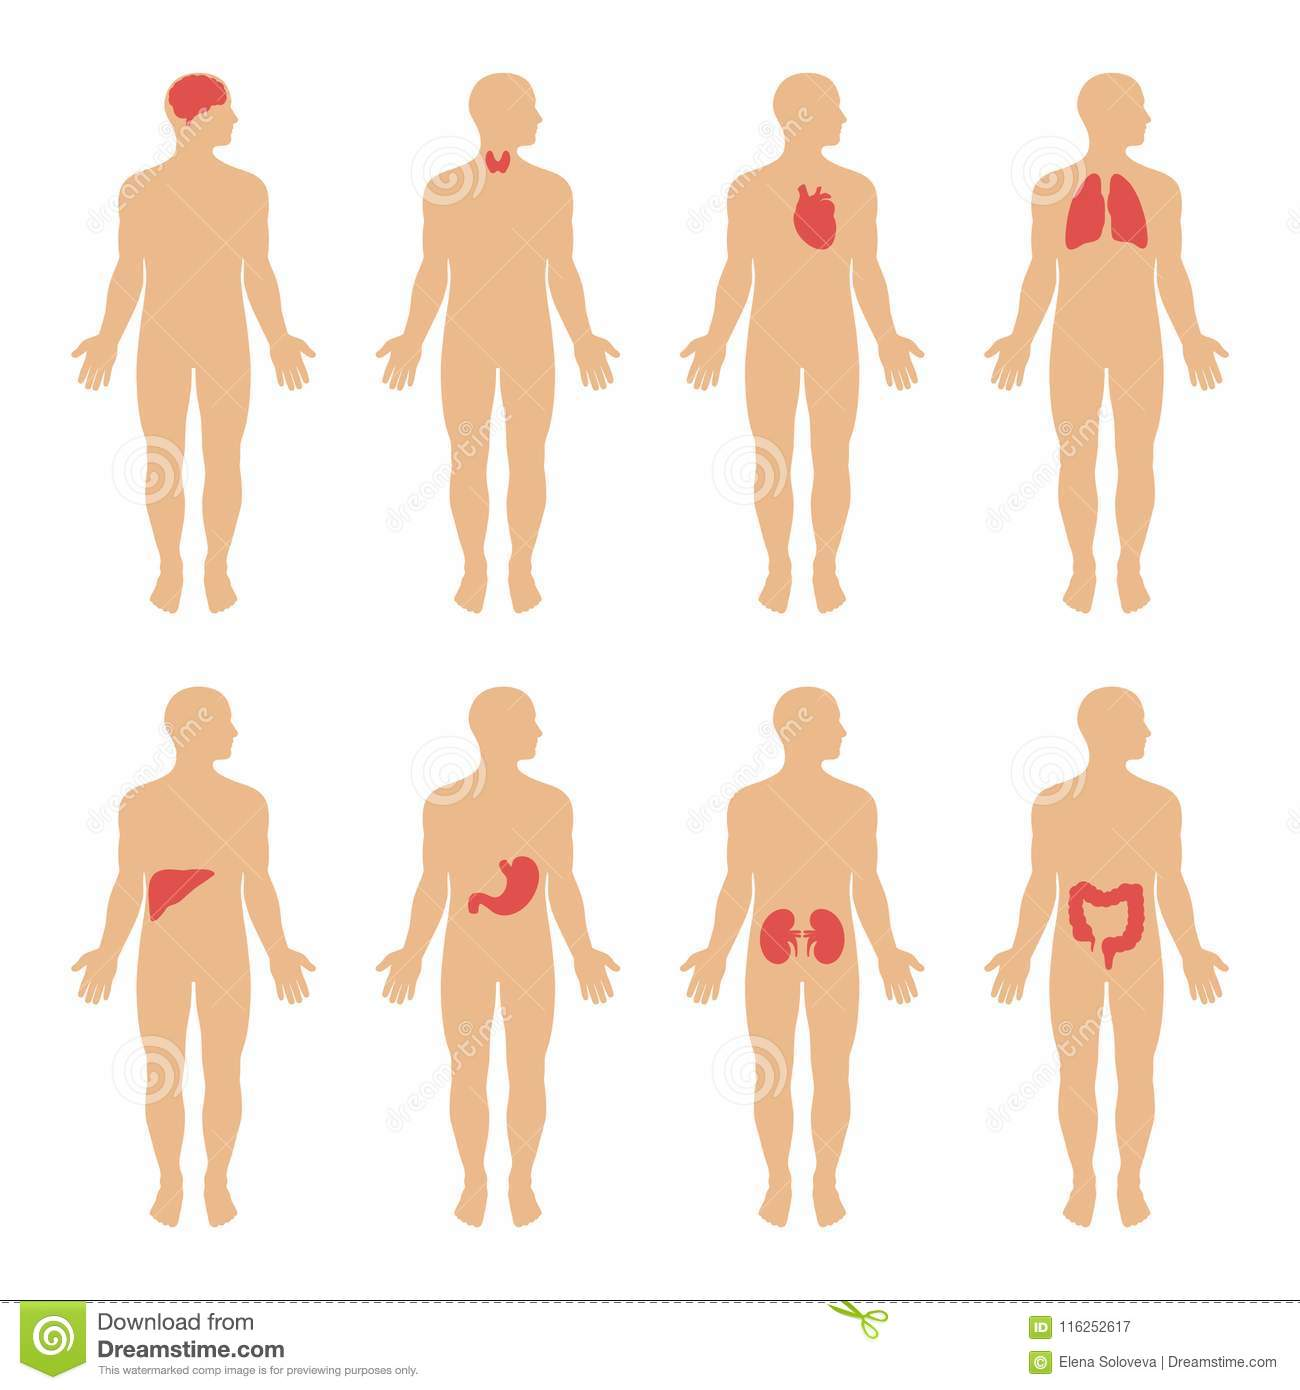 Diagram Showing Human Body Systems Illustration Stock Vector ...